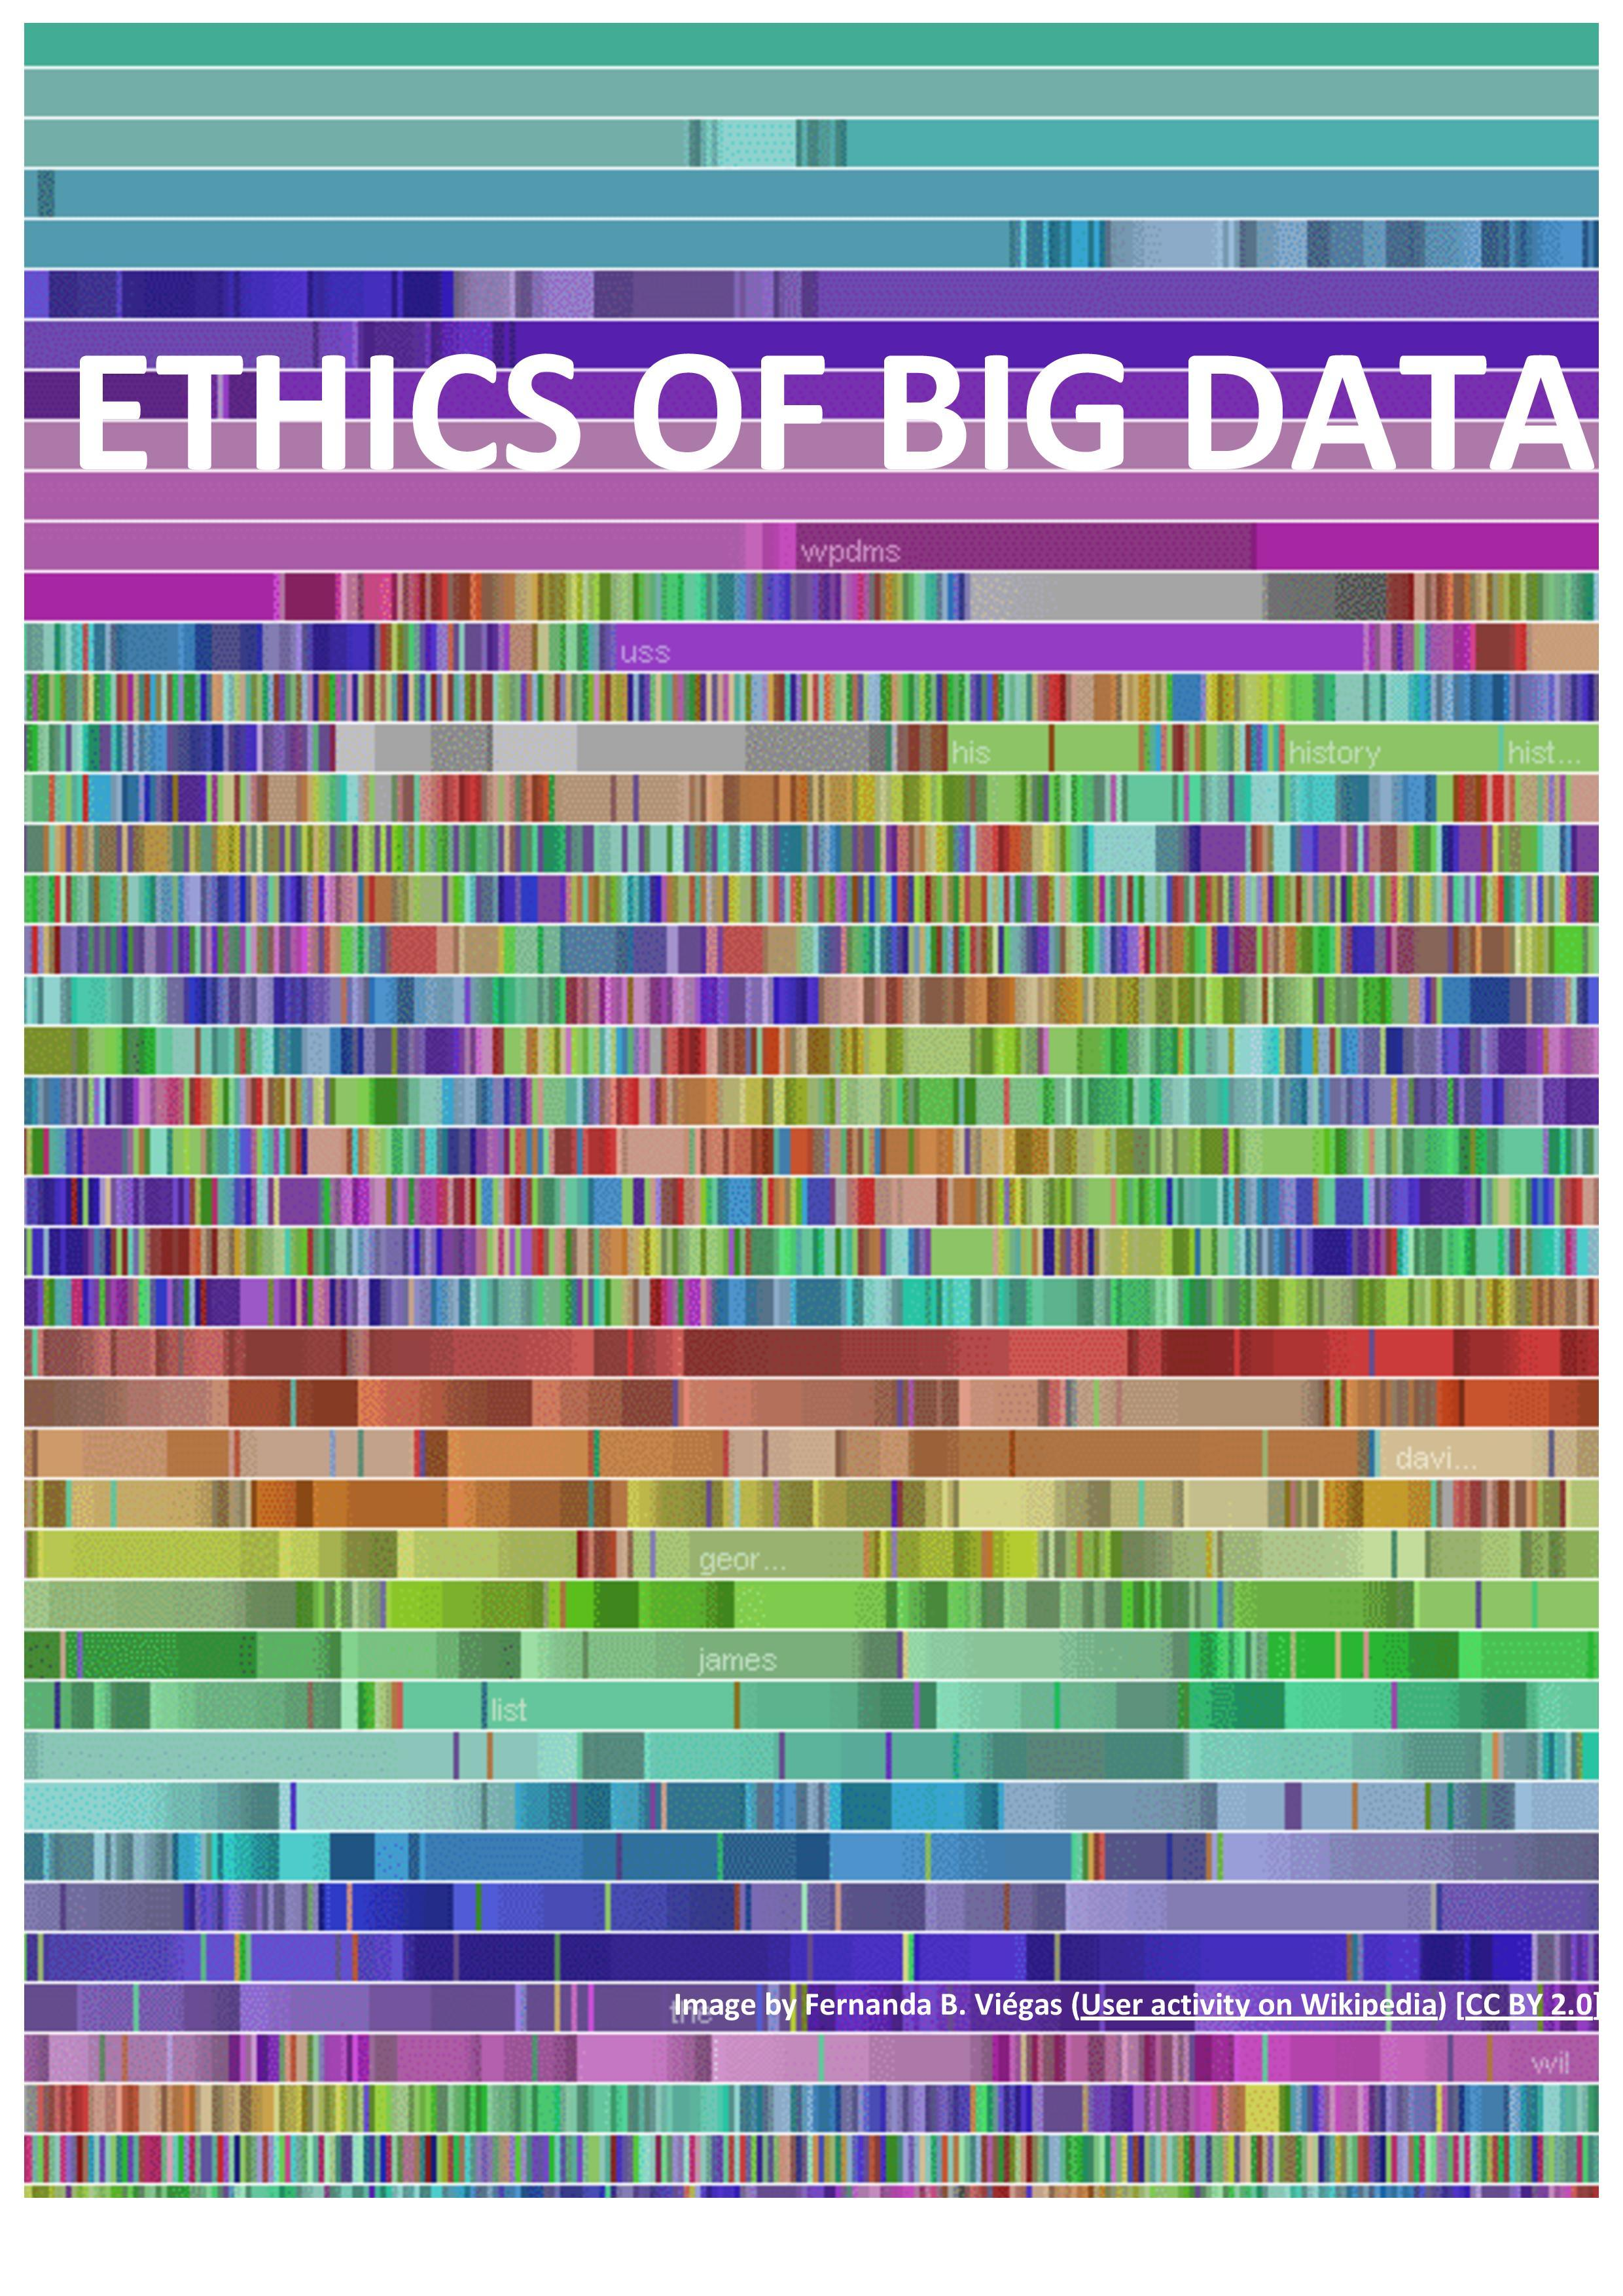 Ethics of Big Data group to explore 'Ethics of a Data-Driven Society' in 2016-17